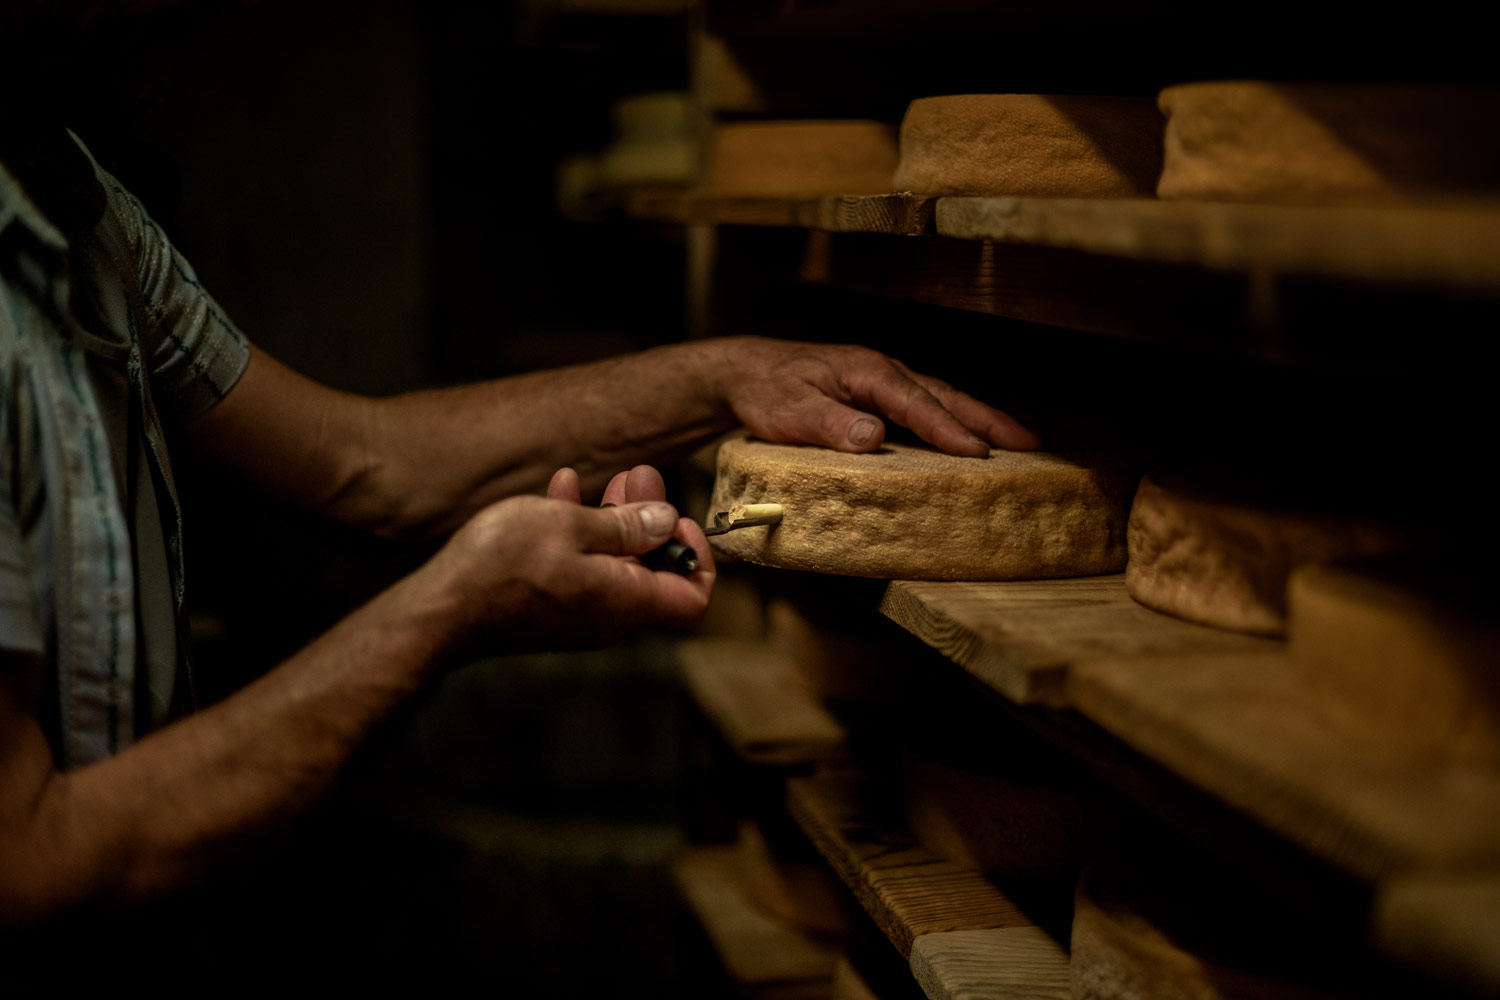 visiter une fromagerie d'alpage gruyère fribourg